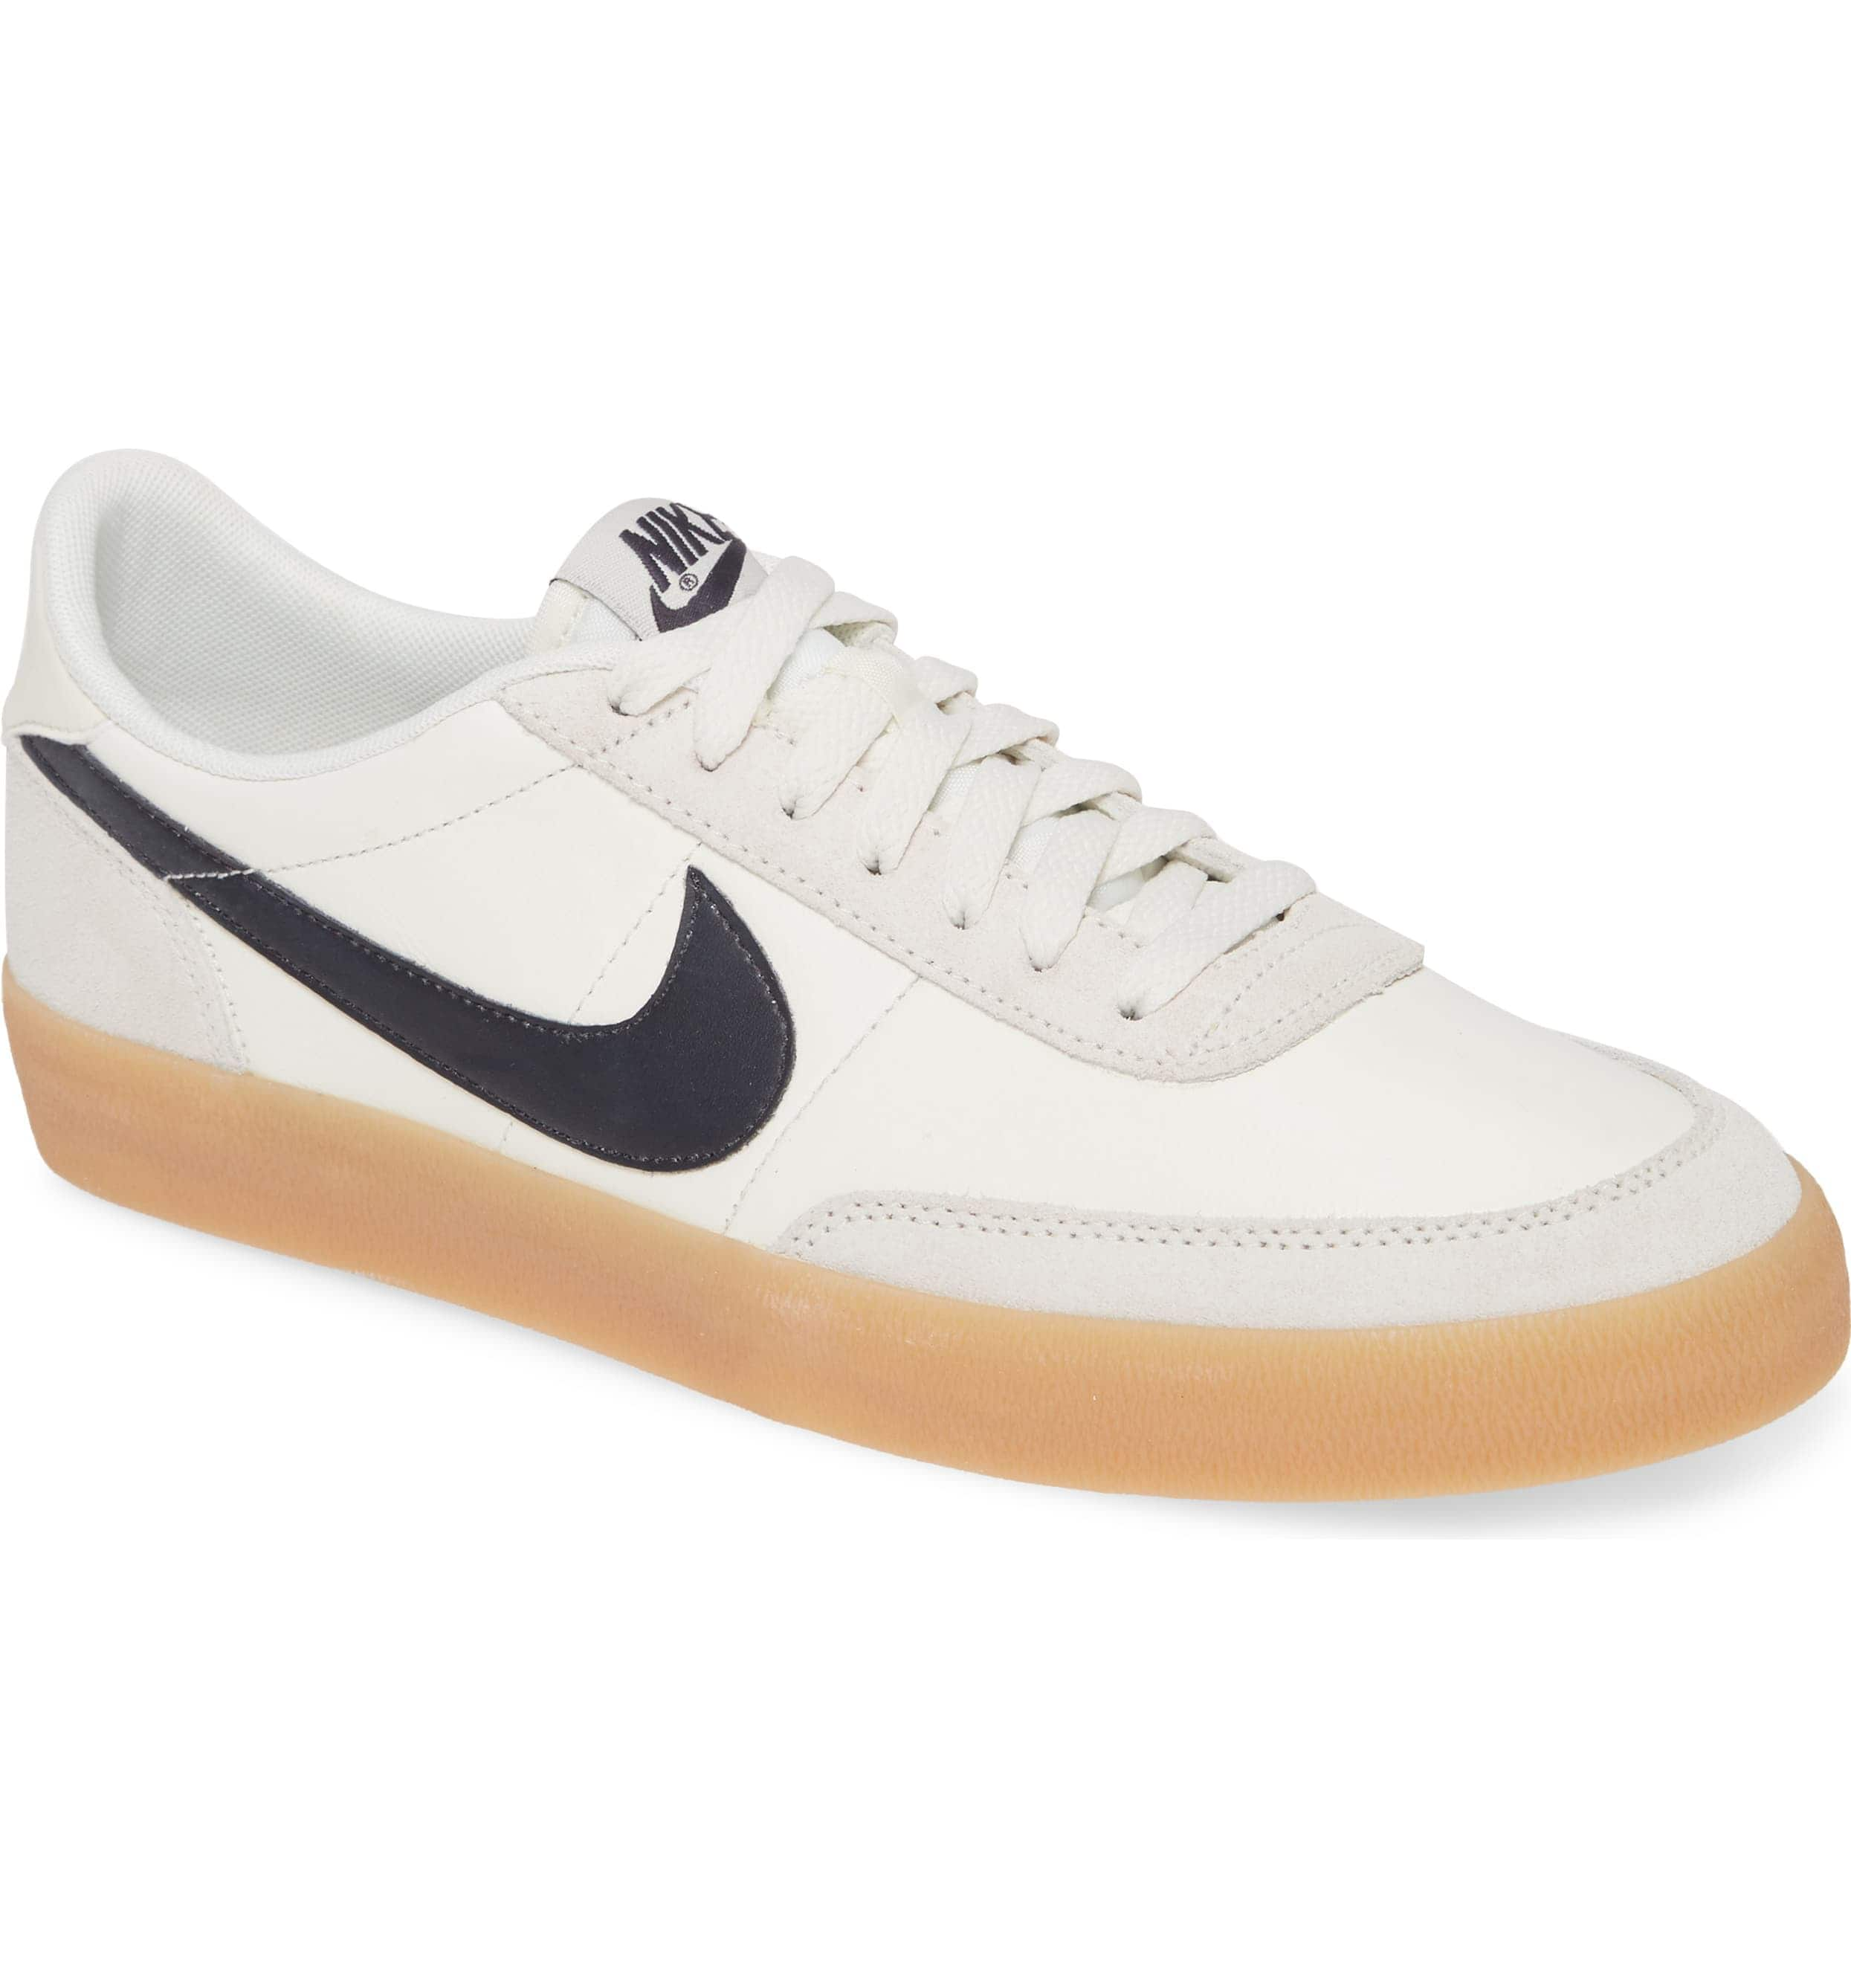 Nike Killshot 2 Sail/ Oil Grey-Gum Yellow $72